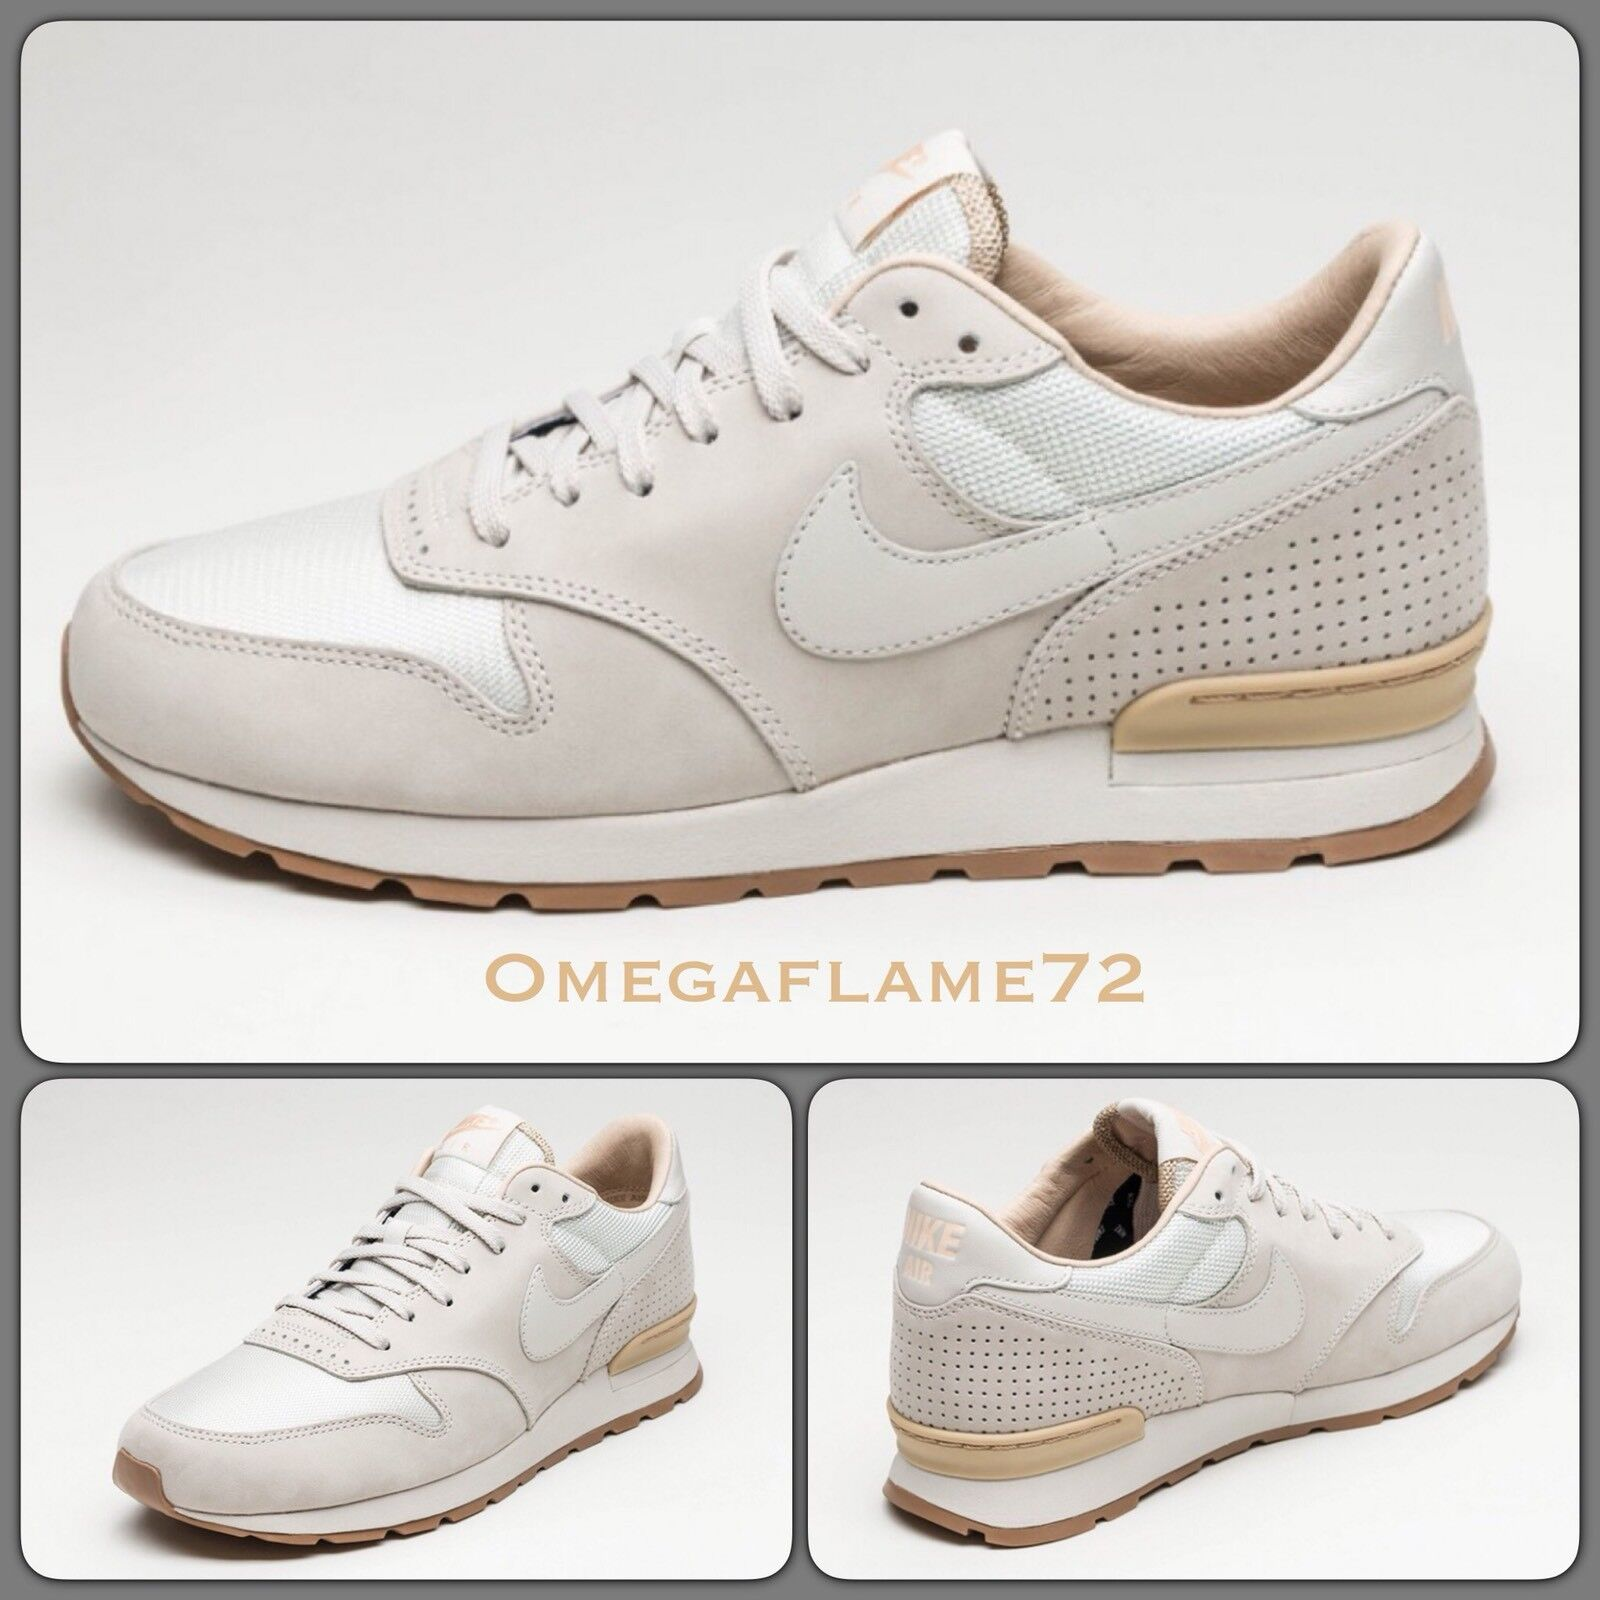 Nike Air Zoom Epic Luxe, 876140-0018.5, EU 43, US 9.5,Internationalist